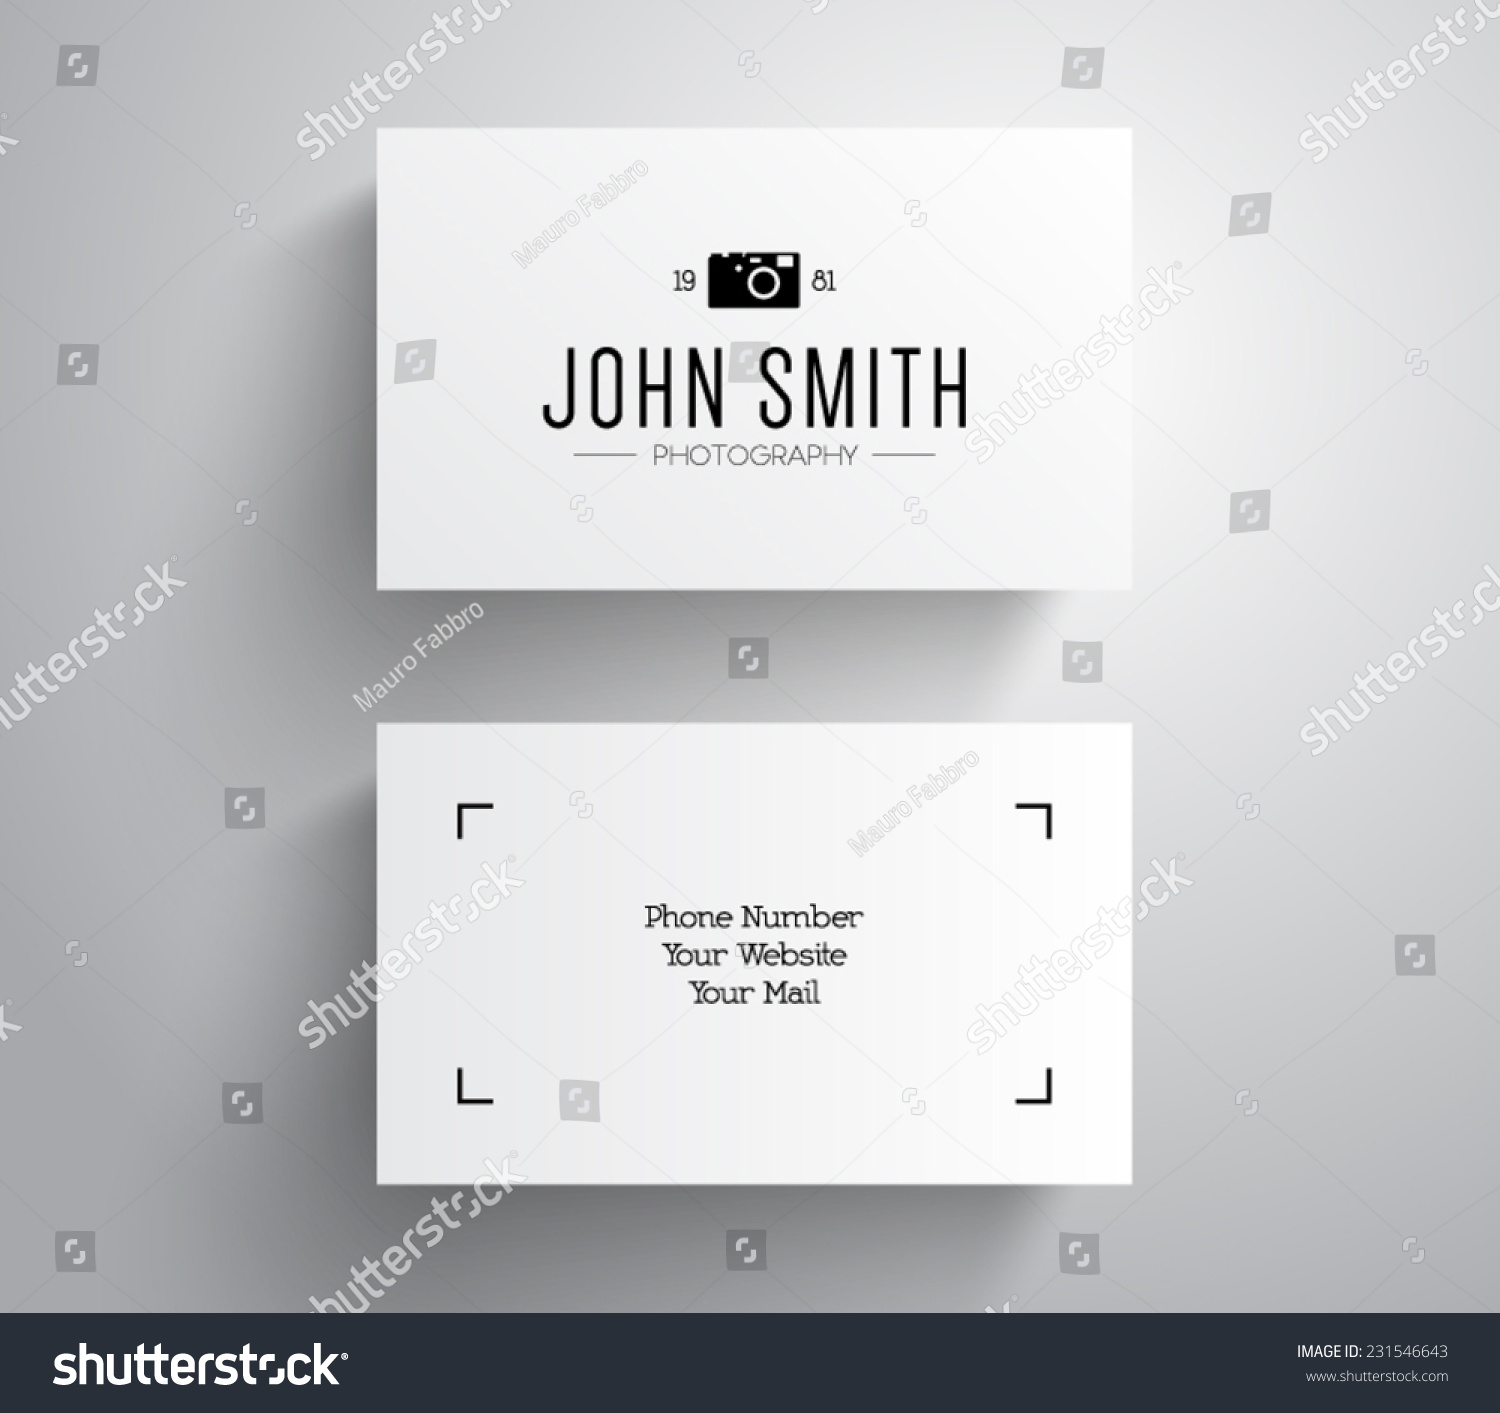 Vector photographer photography business card template stock vector photographer photography business card template with hipster style design logo logotype brand magicingreecefo Gallery